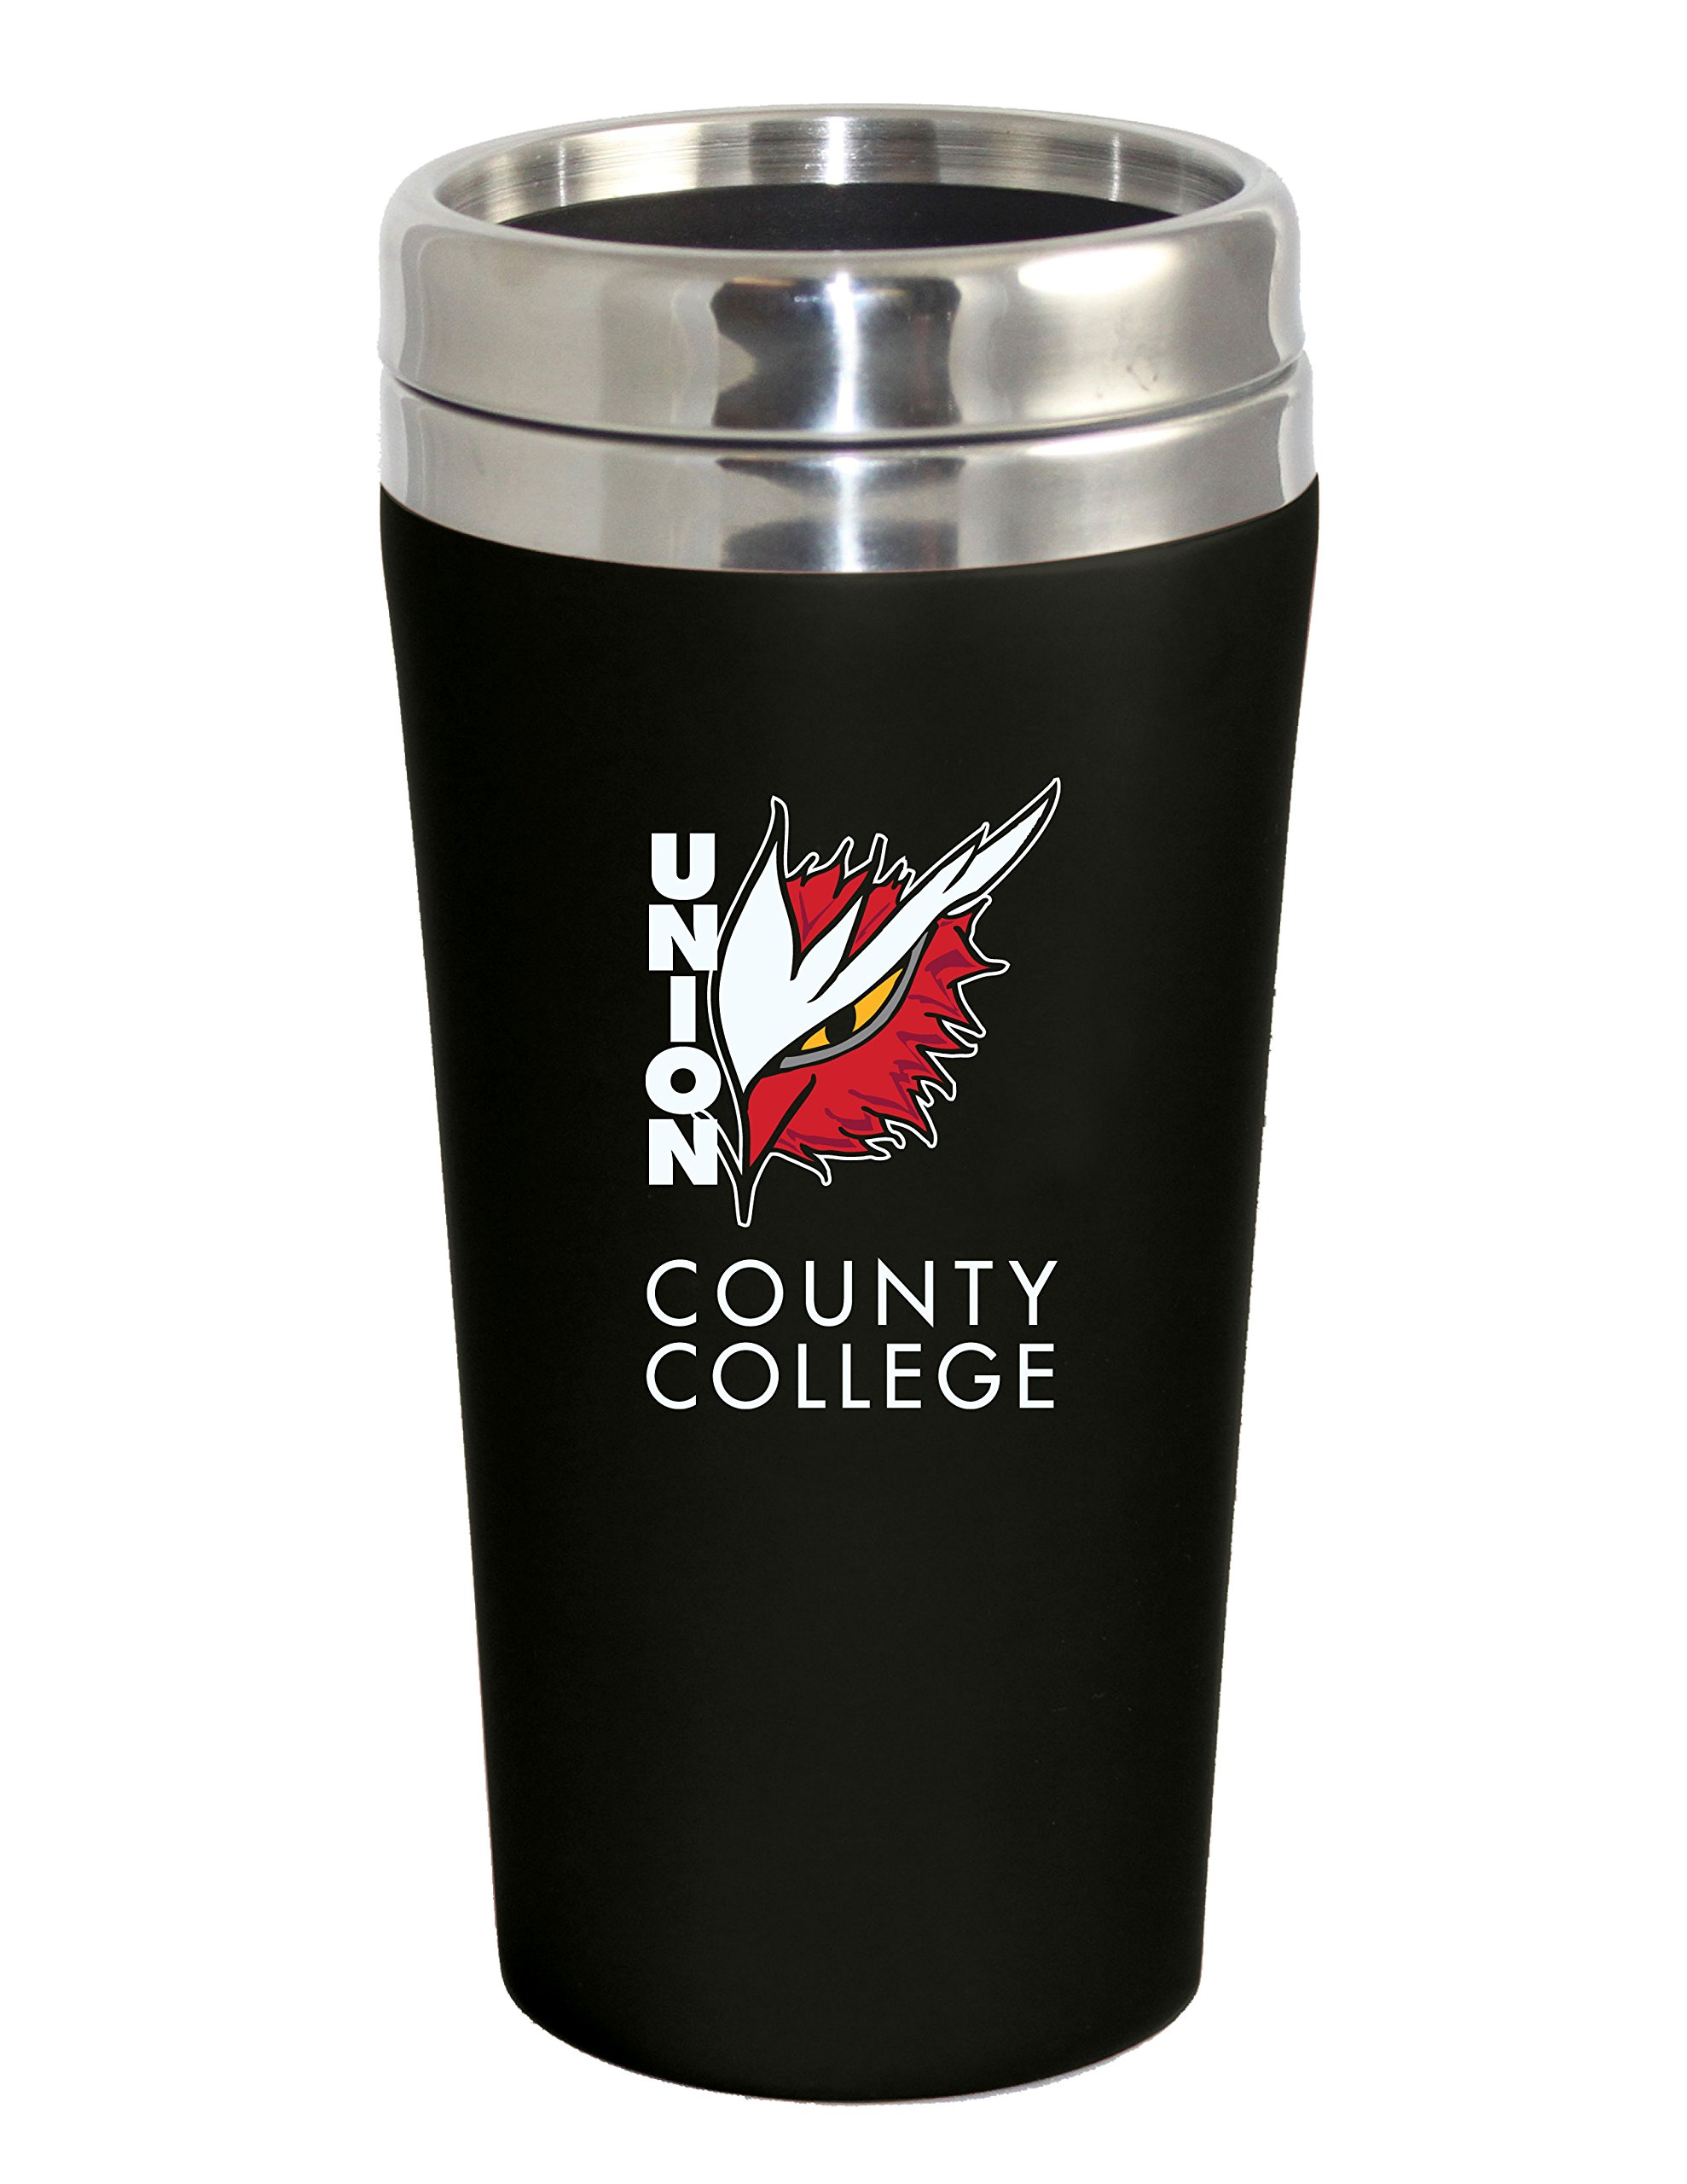 Fanatic Group Union County College Double Walled Travel Tumbler, Black - Design 2 by Fanatic Group (Image #1)